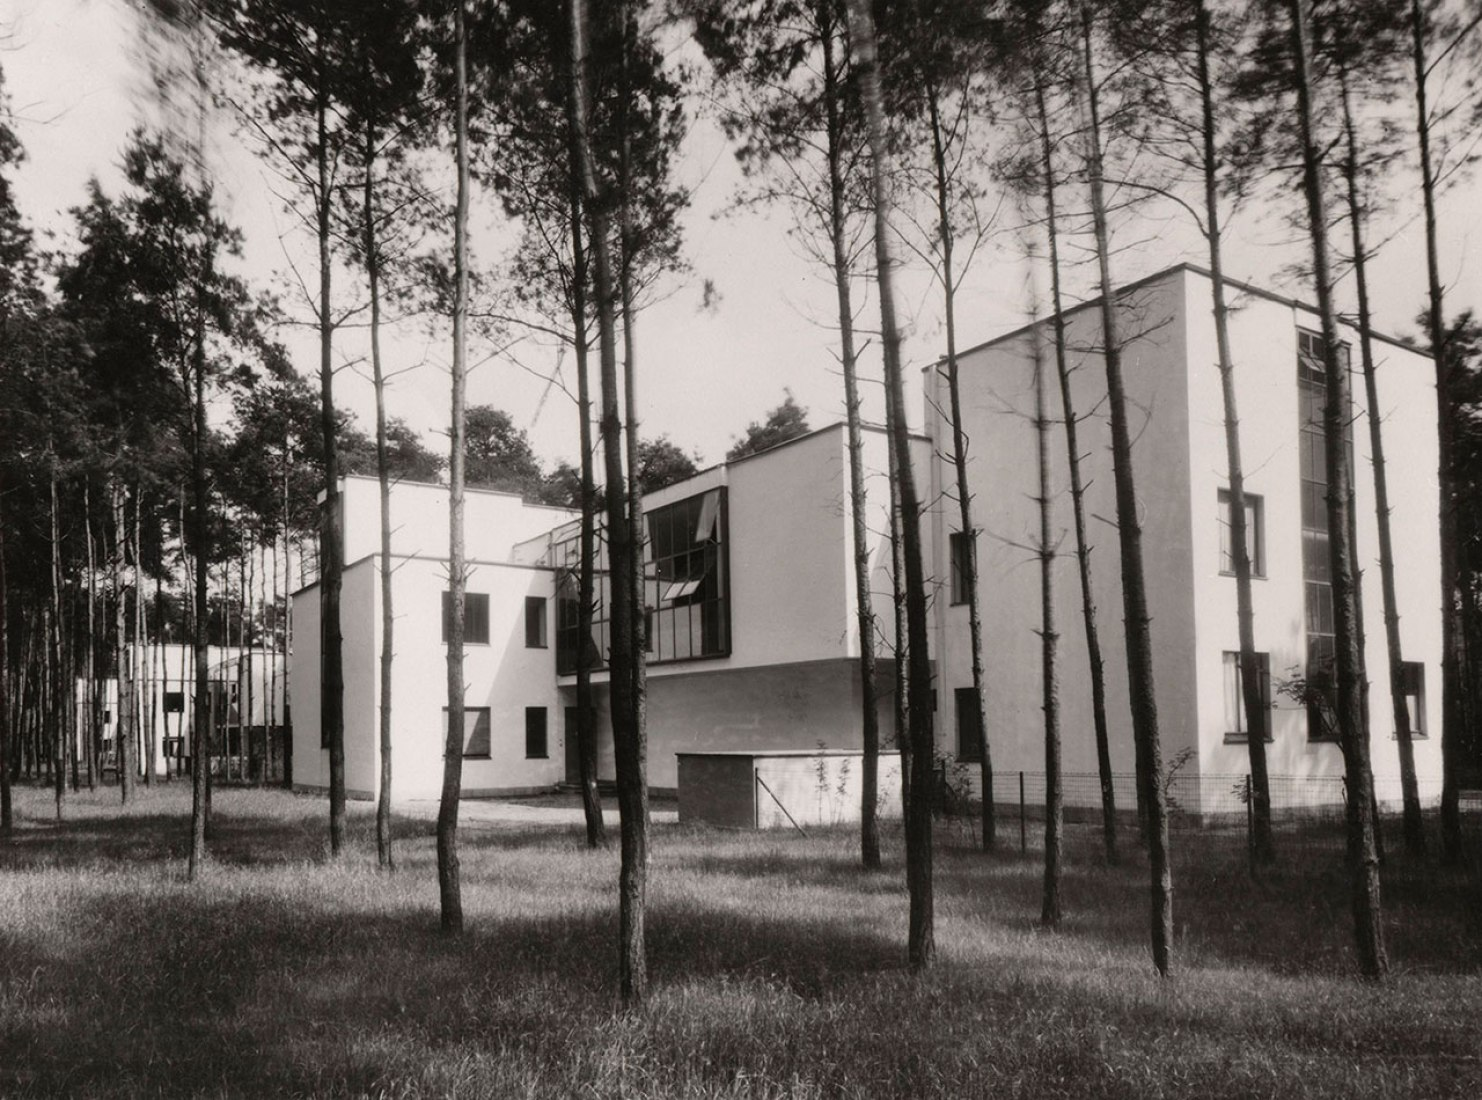 The modernism was a provocation in 1920s Dessau. In the foreground the houses of Kandinsky and Klee. Photography by Lucia Moholy-Nagy, 1927, © Bauhaus-Archiv Berlin / VG Bild-Kunst.